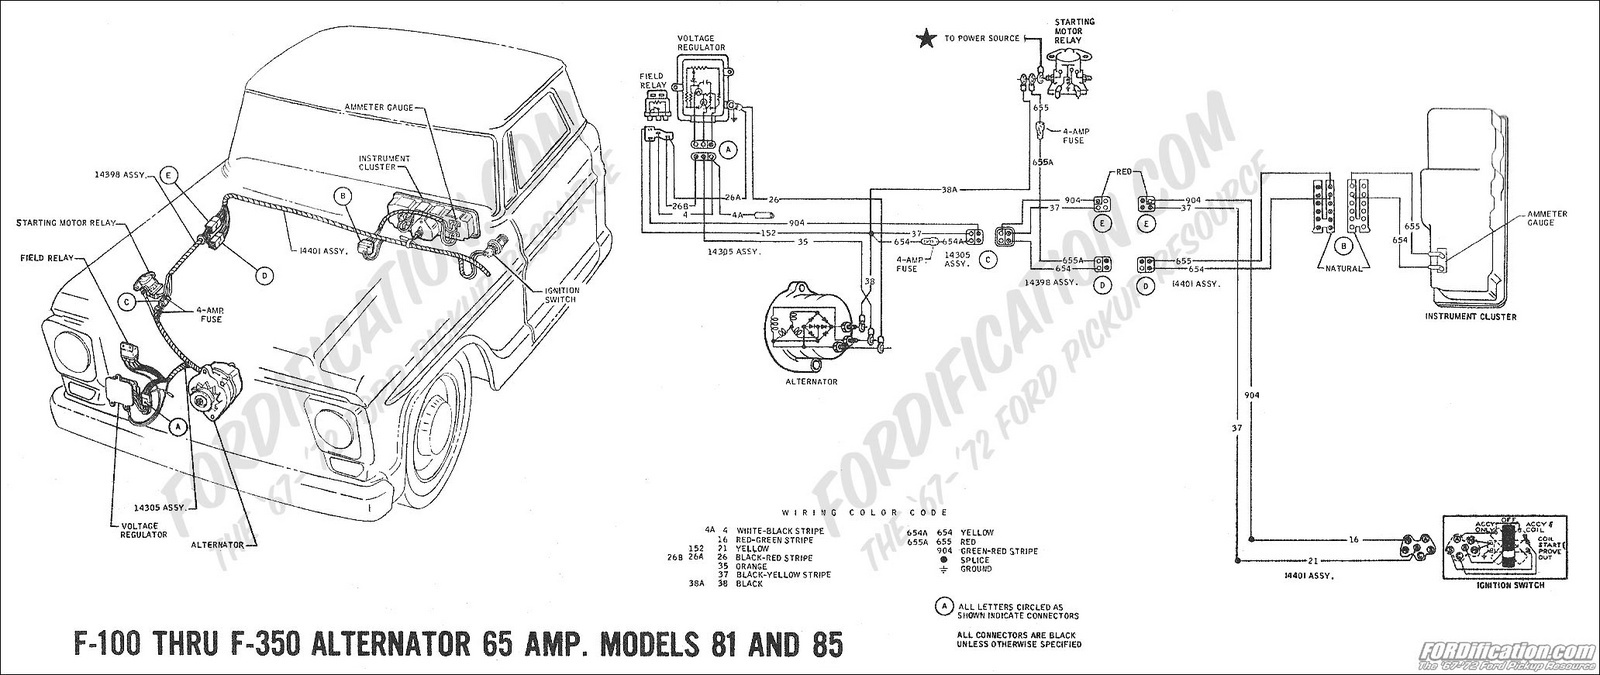 1969 chevy pickup wiring diagram with Discussion C13911 Ds652668 on P 0900c15280251e19 also Wiring Diagram 1973 Chrysler Imperial in addition 1972 Toyota Fj40 Wiring Diagram furthermore Brake System further 1967 Chevelle Column Shift Linkage Diagram.